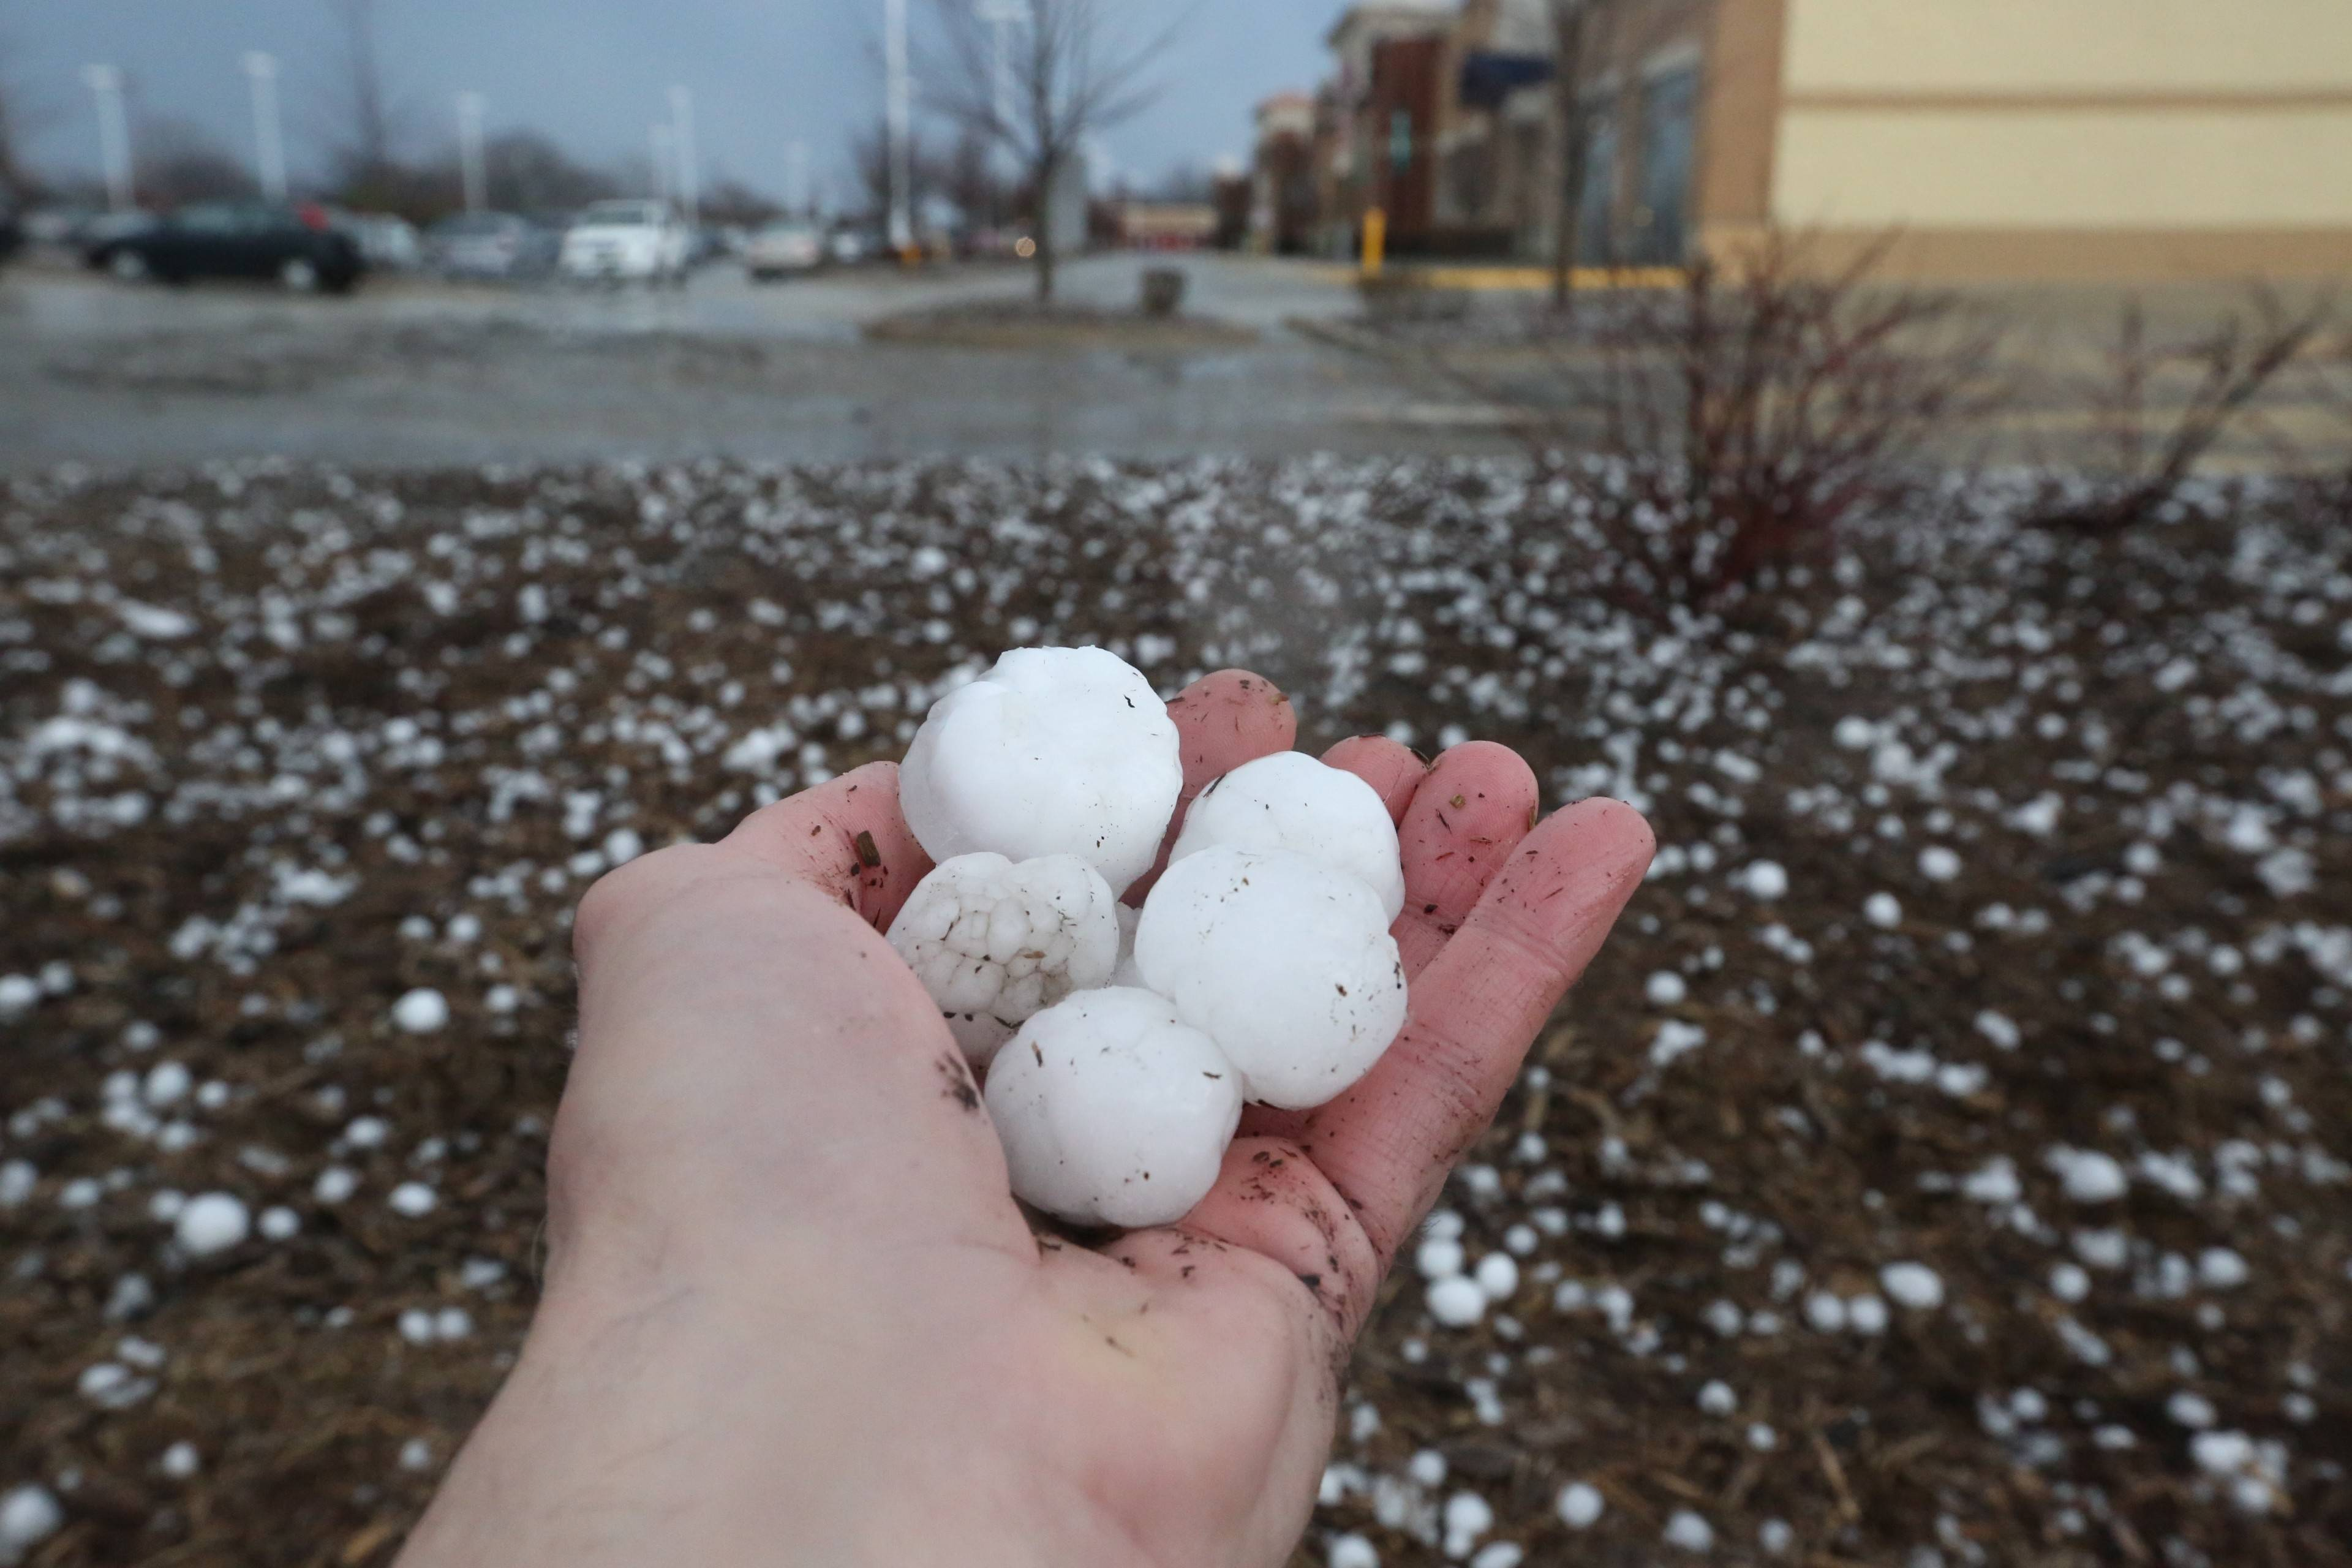 Lake Zurich was one of several communities hit by hail the morning of Saturday, April 12. Hail measuring 1.75 inches in diameter was reported there.